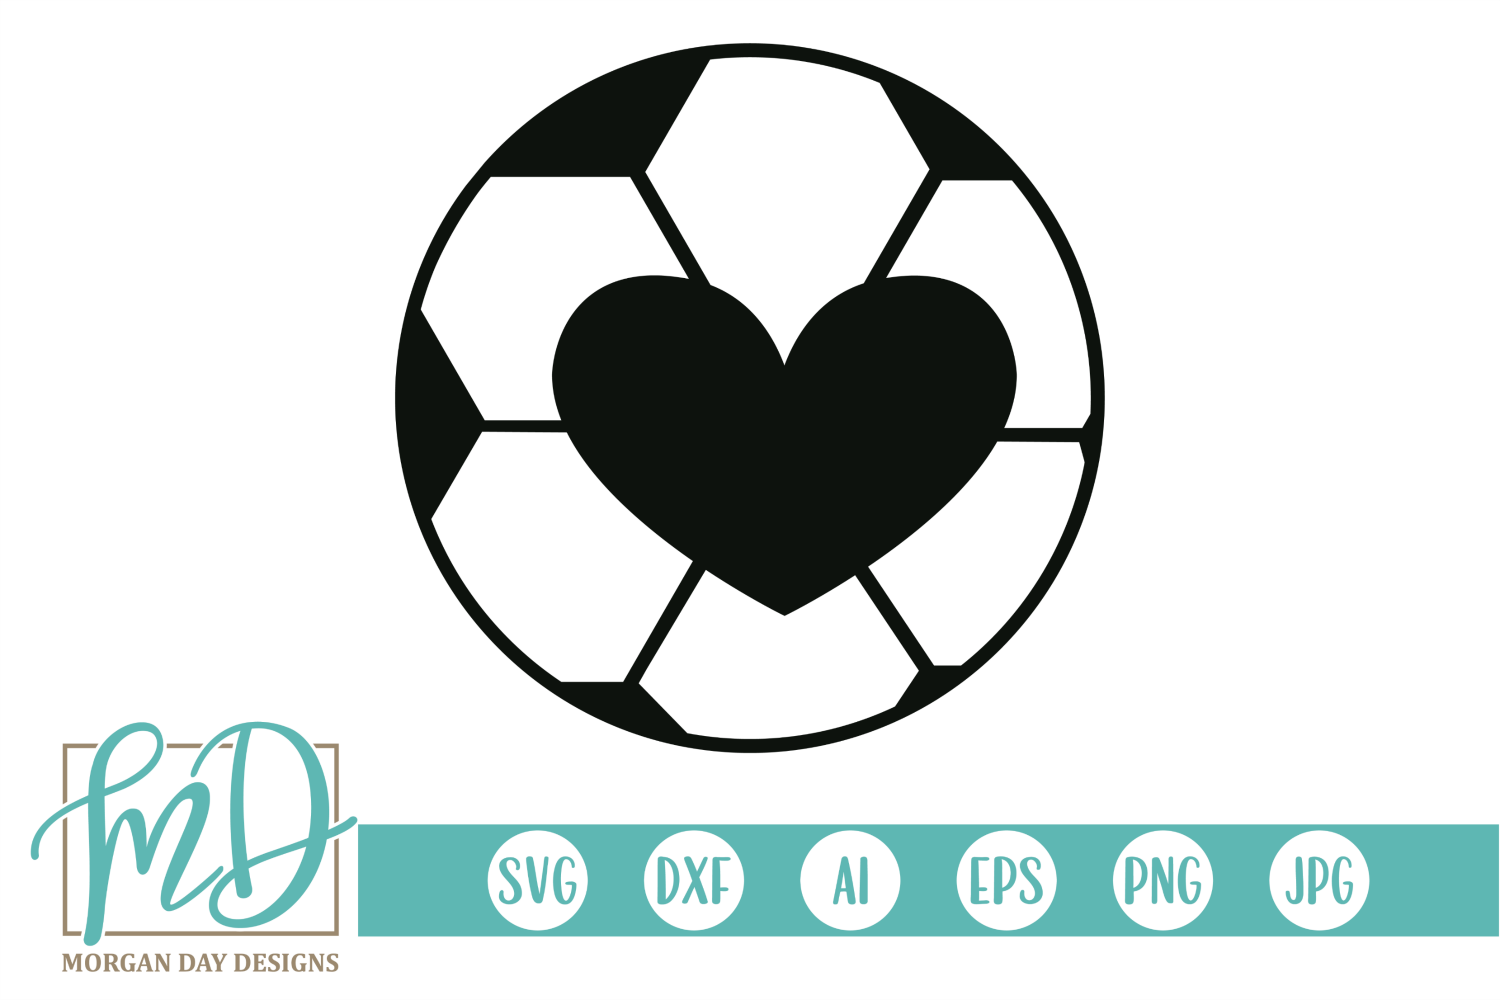 Soccer Ball Heart SVG, DXF, AI, EPS, PNG, JPEG example image 1